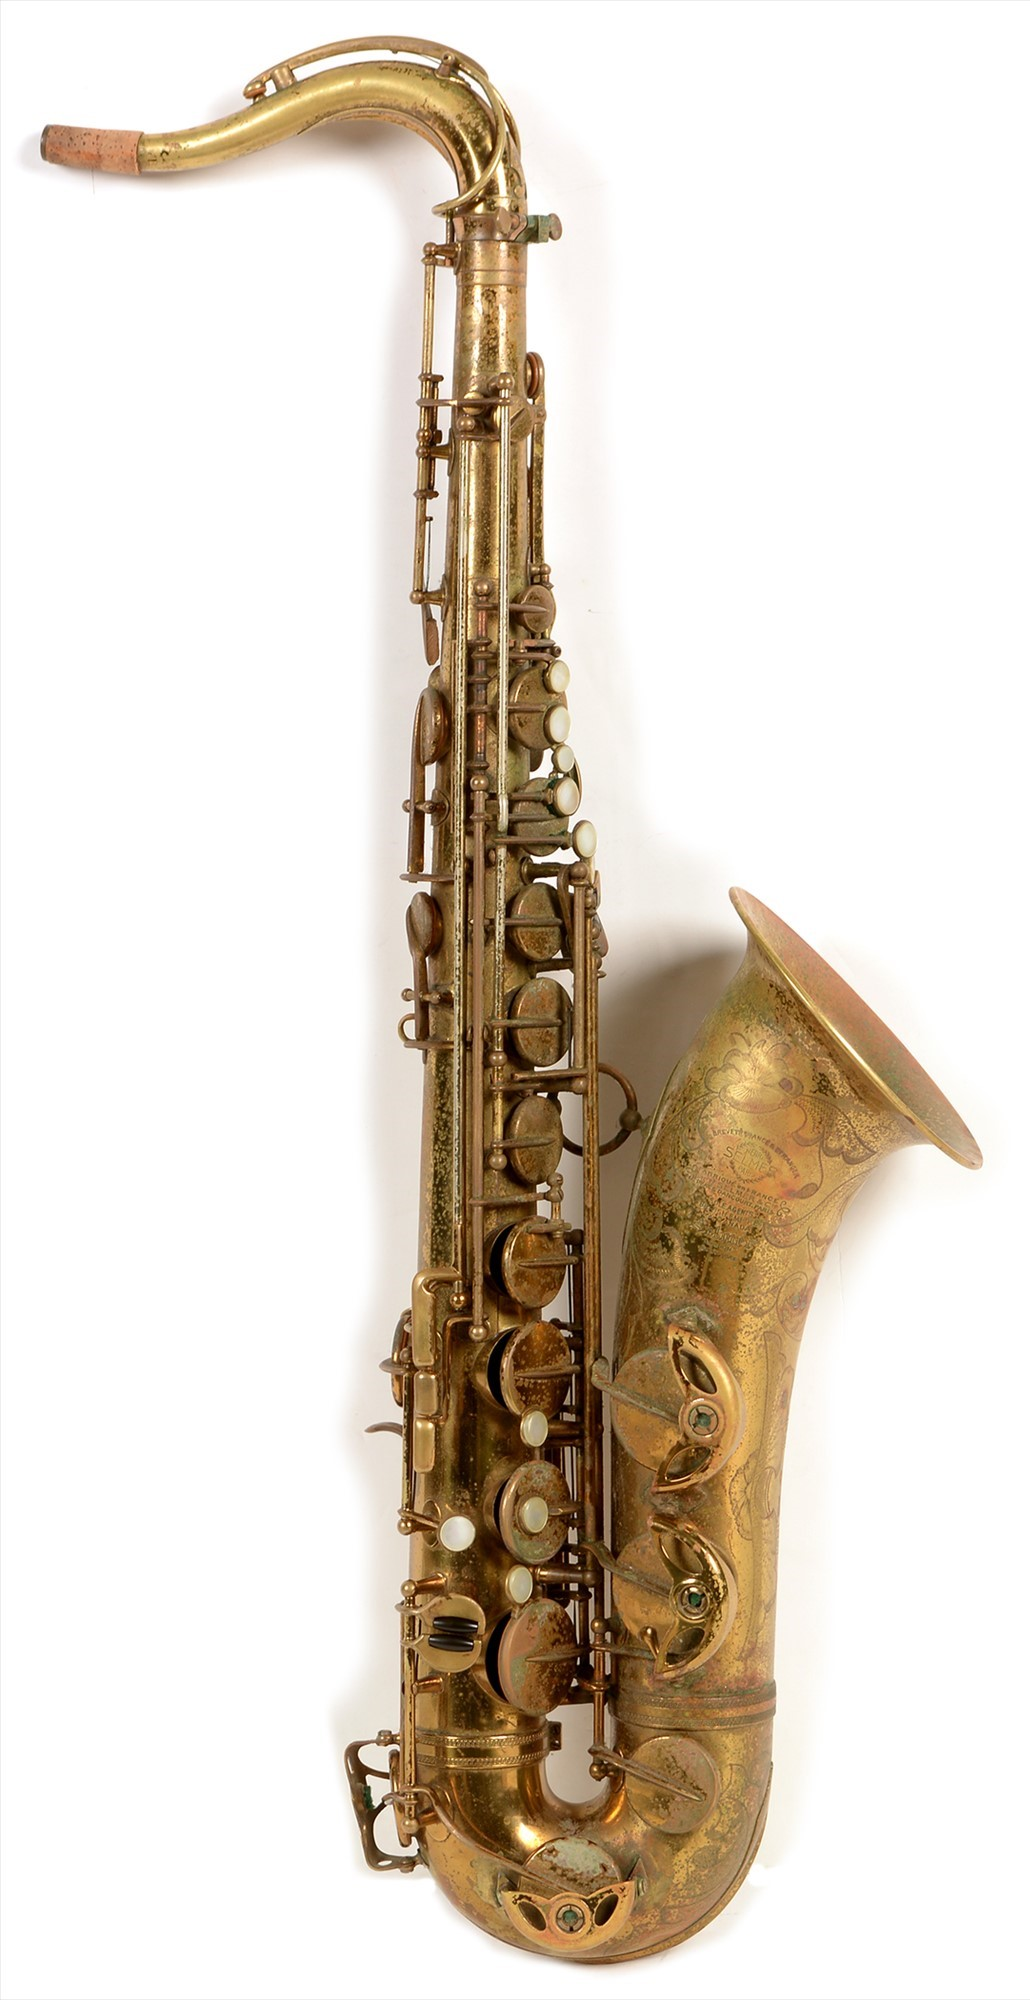 1949 Selmer Paris super balanced action tenor saxophone